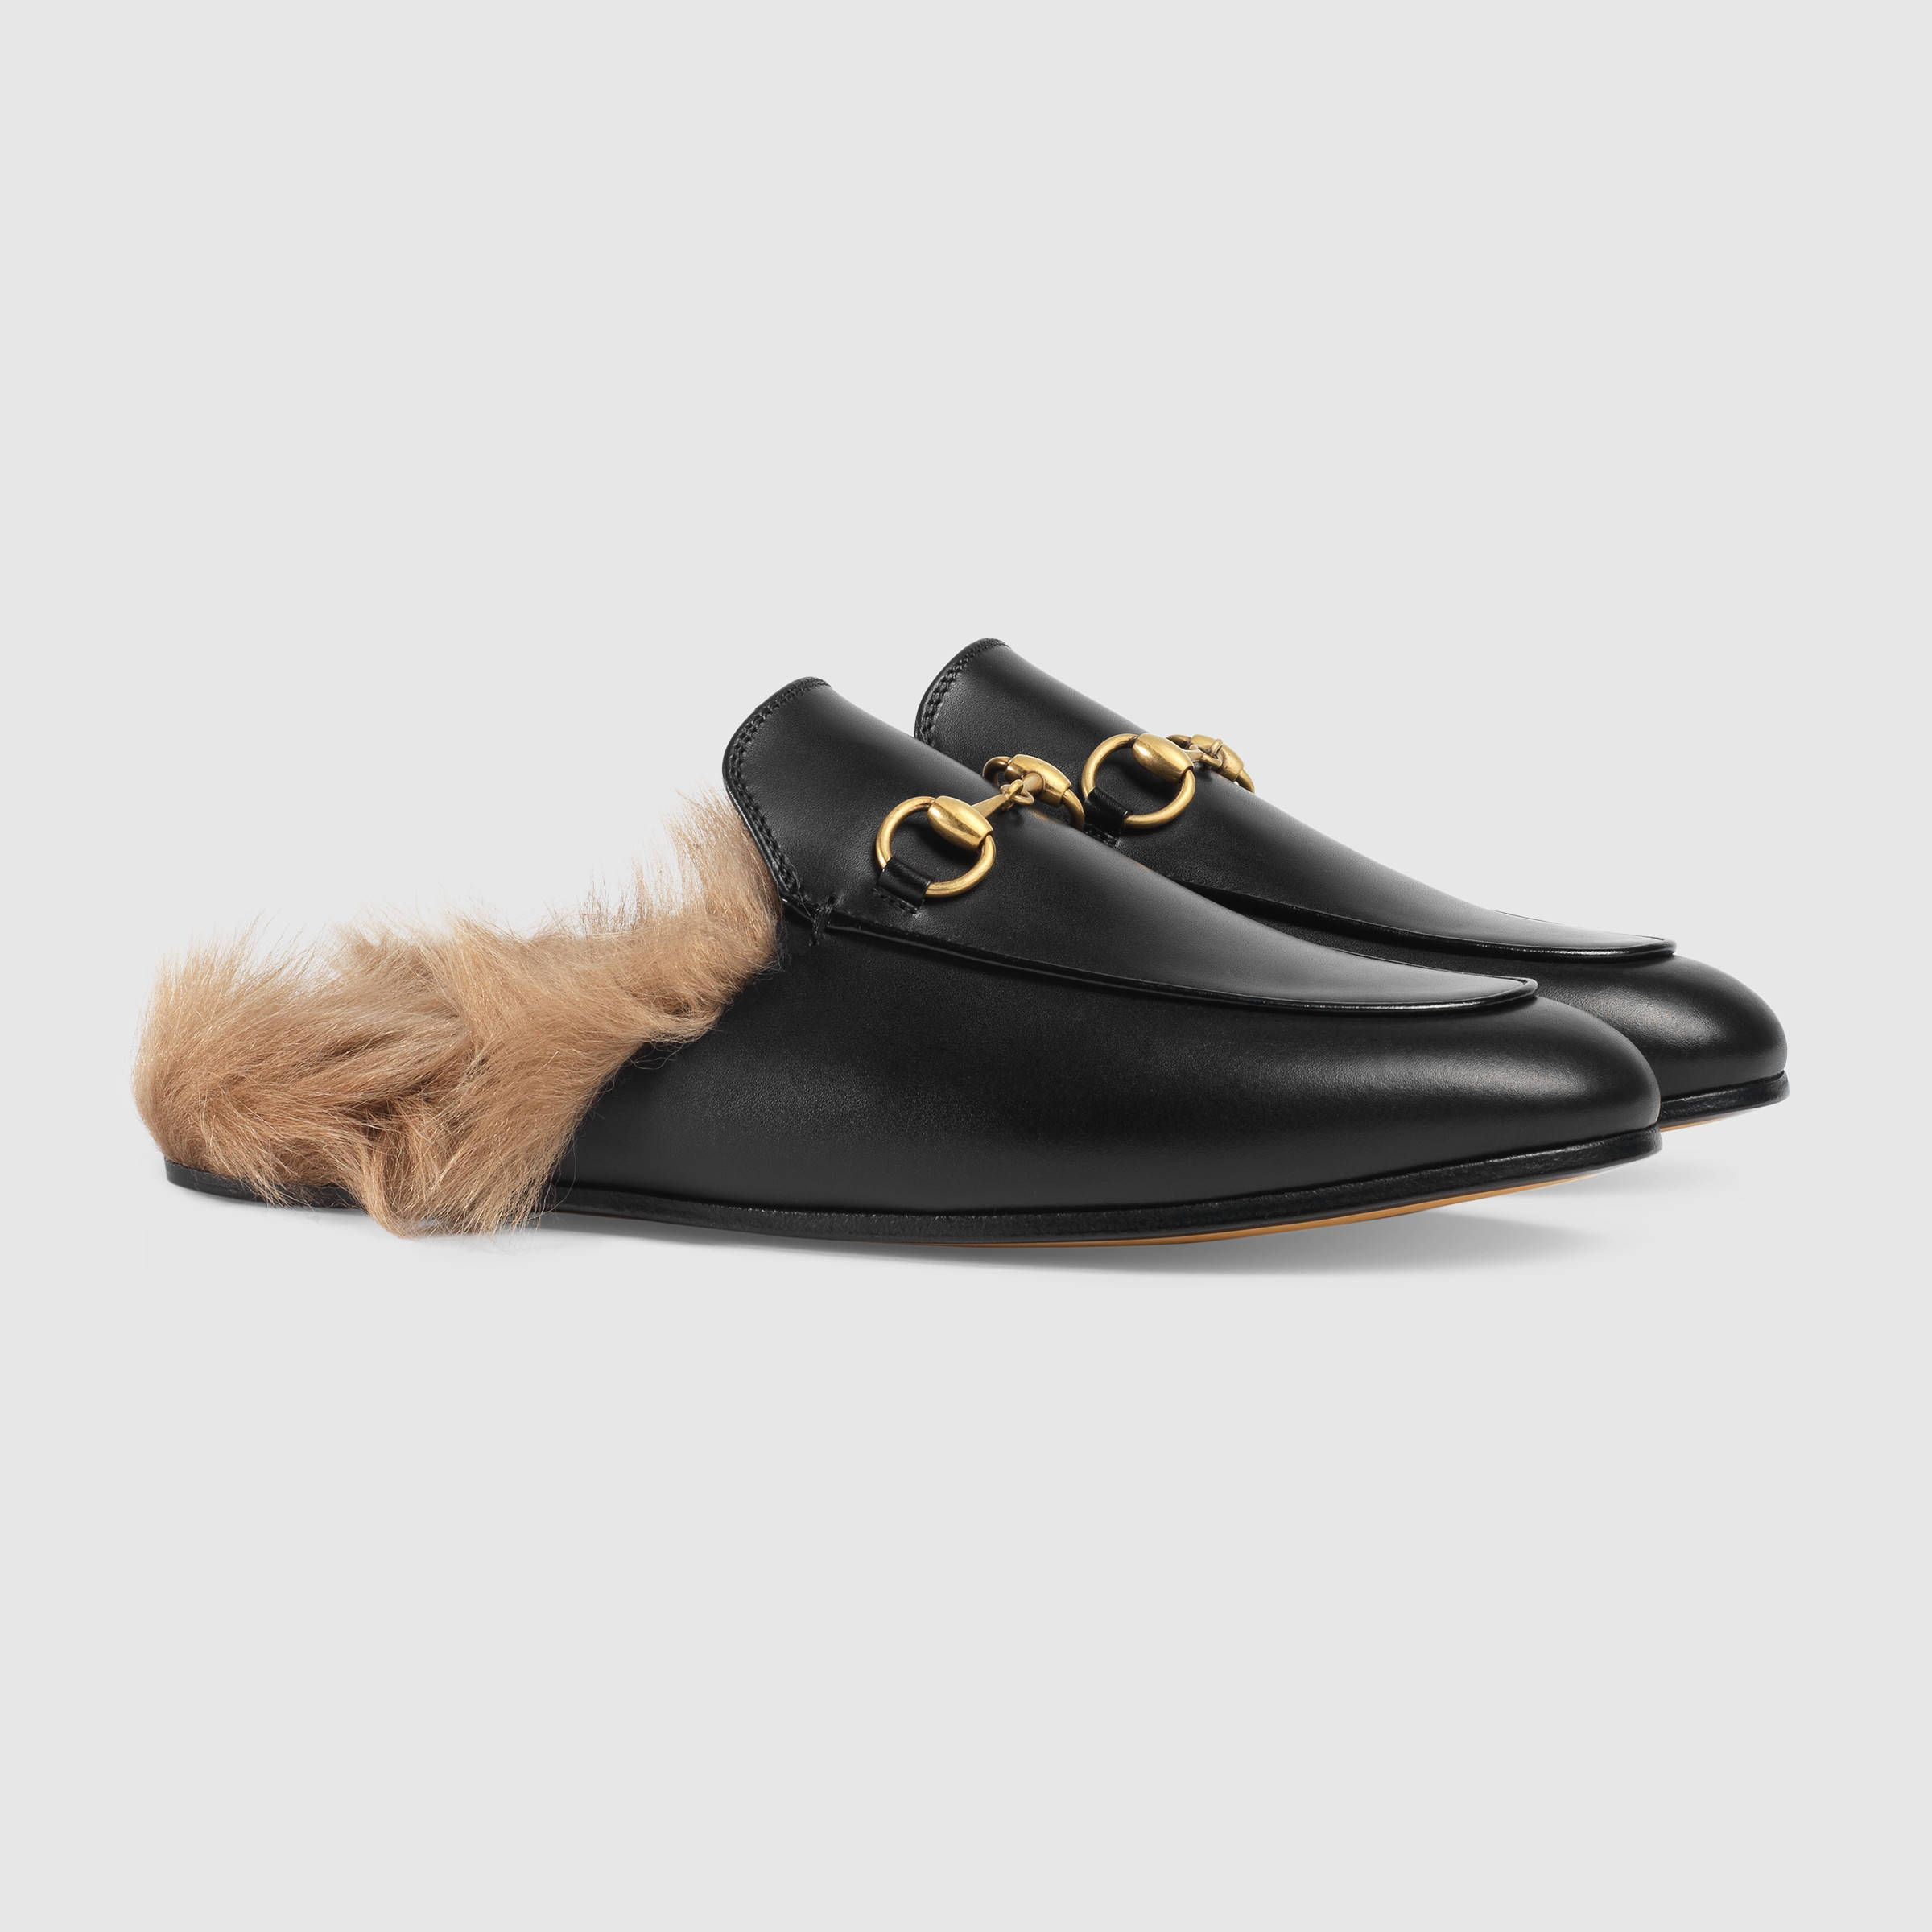 7079e3cda7f4 Gucci Women - Princetown leather slipper - 397749DKHH01063